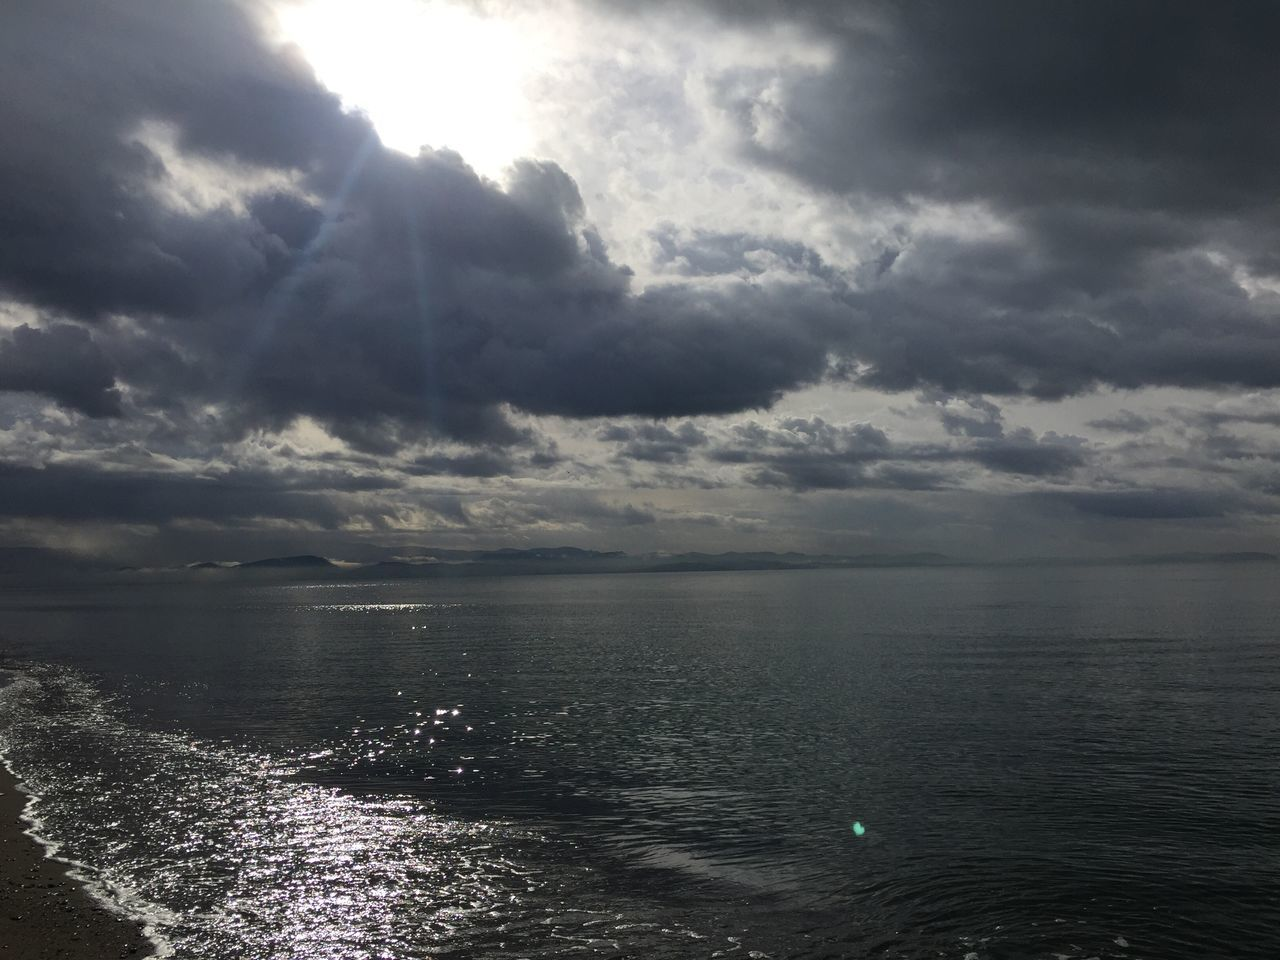 Sea Sky Water Scenics Nature Cloud - Sky Tranquility Beauty In Nature Tranquil Scene Outdoors Rippled Horizon Over Water No People Idyllic Beach Day Storm Cloud